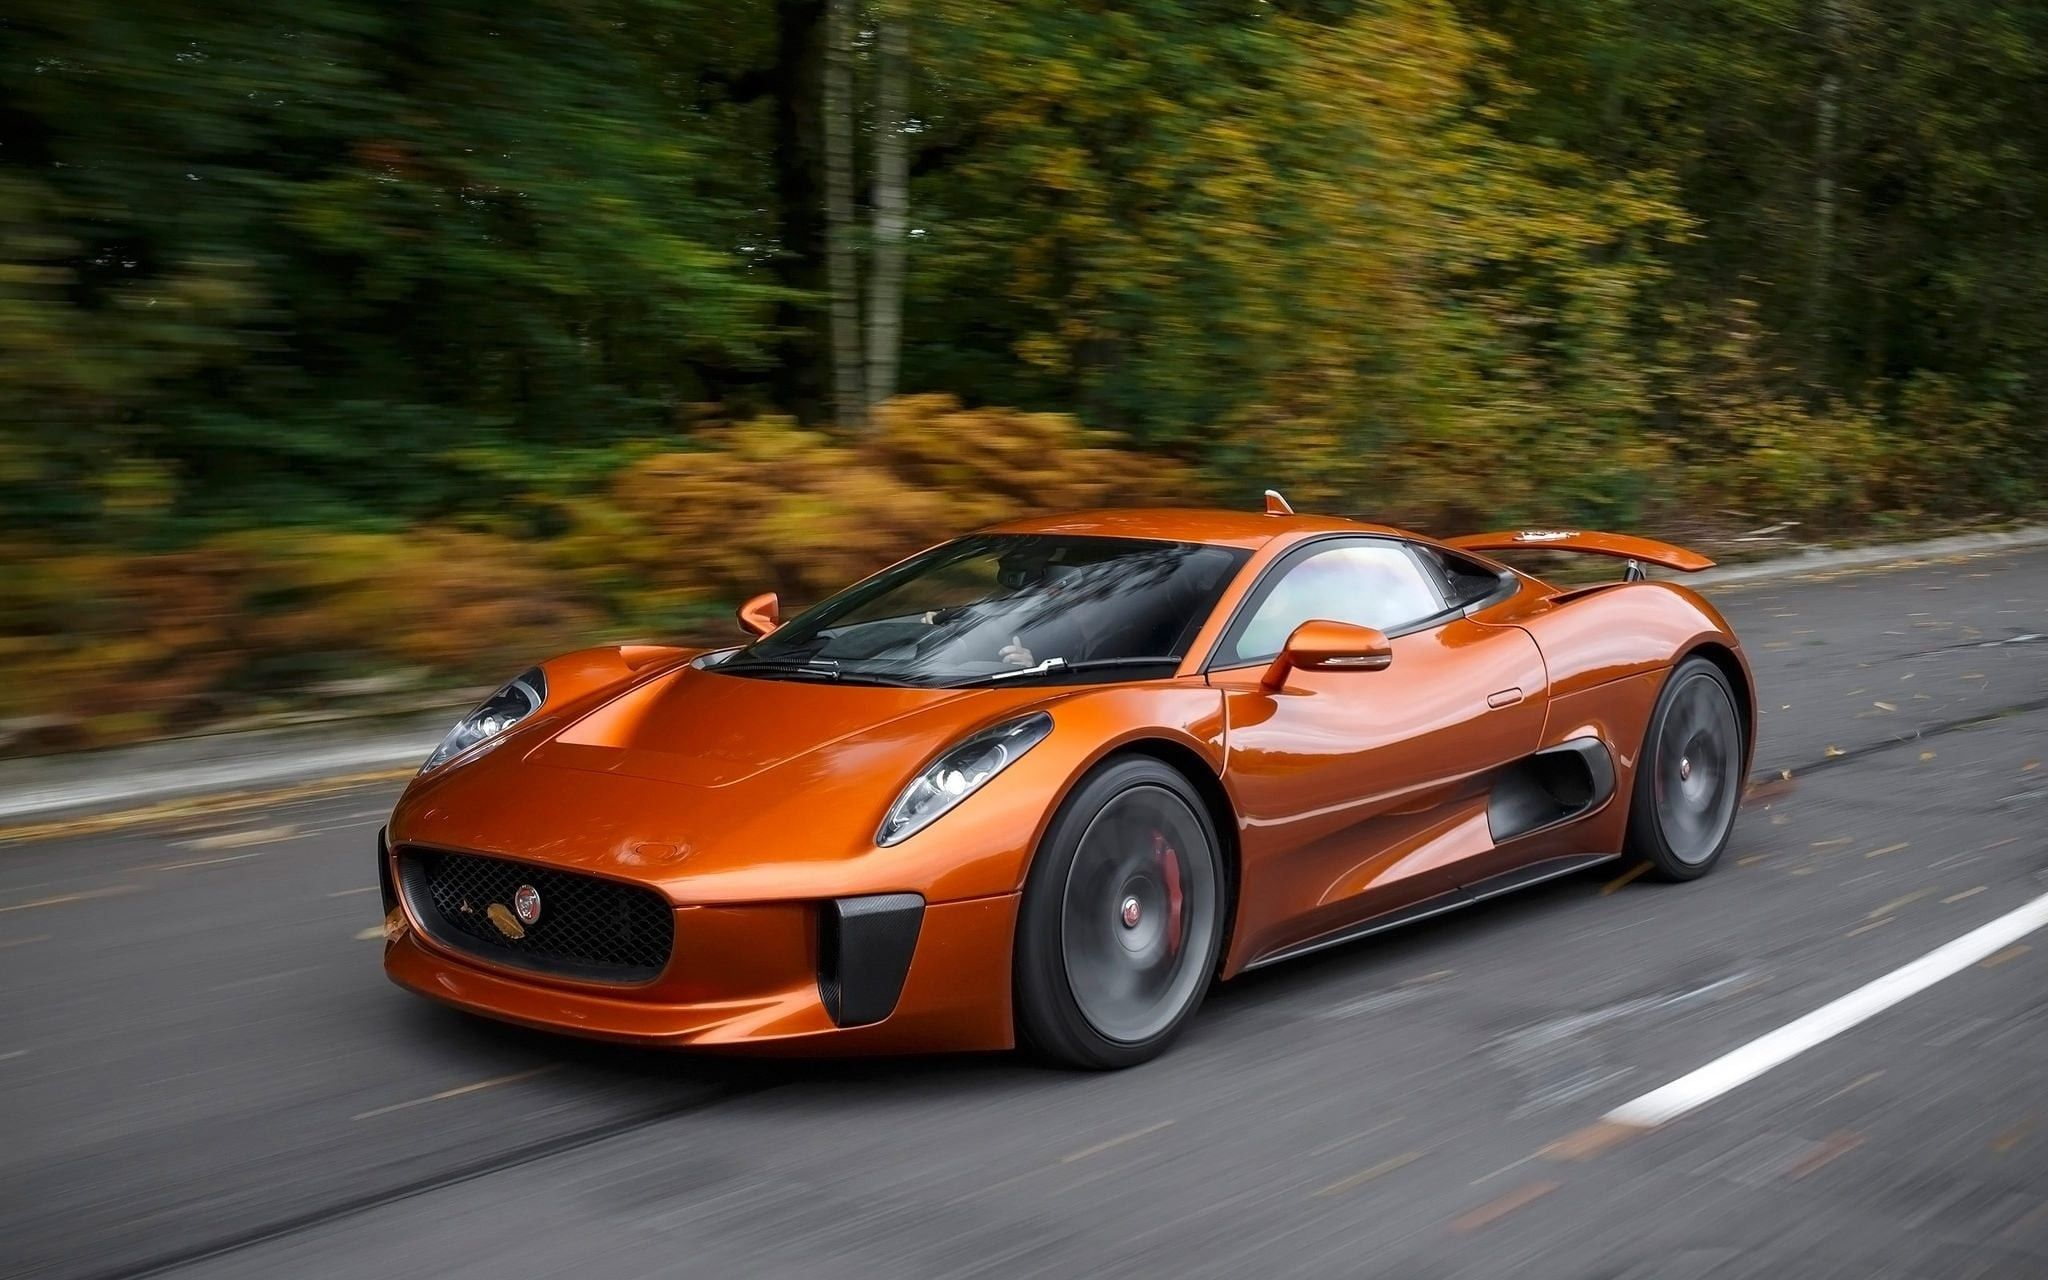 Jaguar Cx75 Electric Sports Car Bond Cars Concept Cars